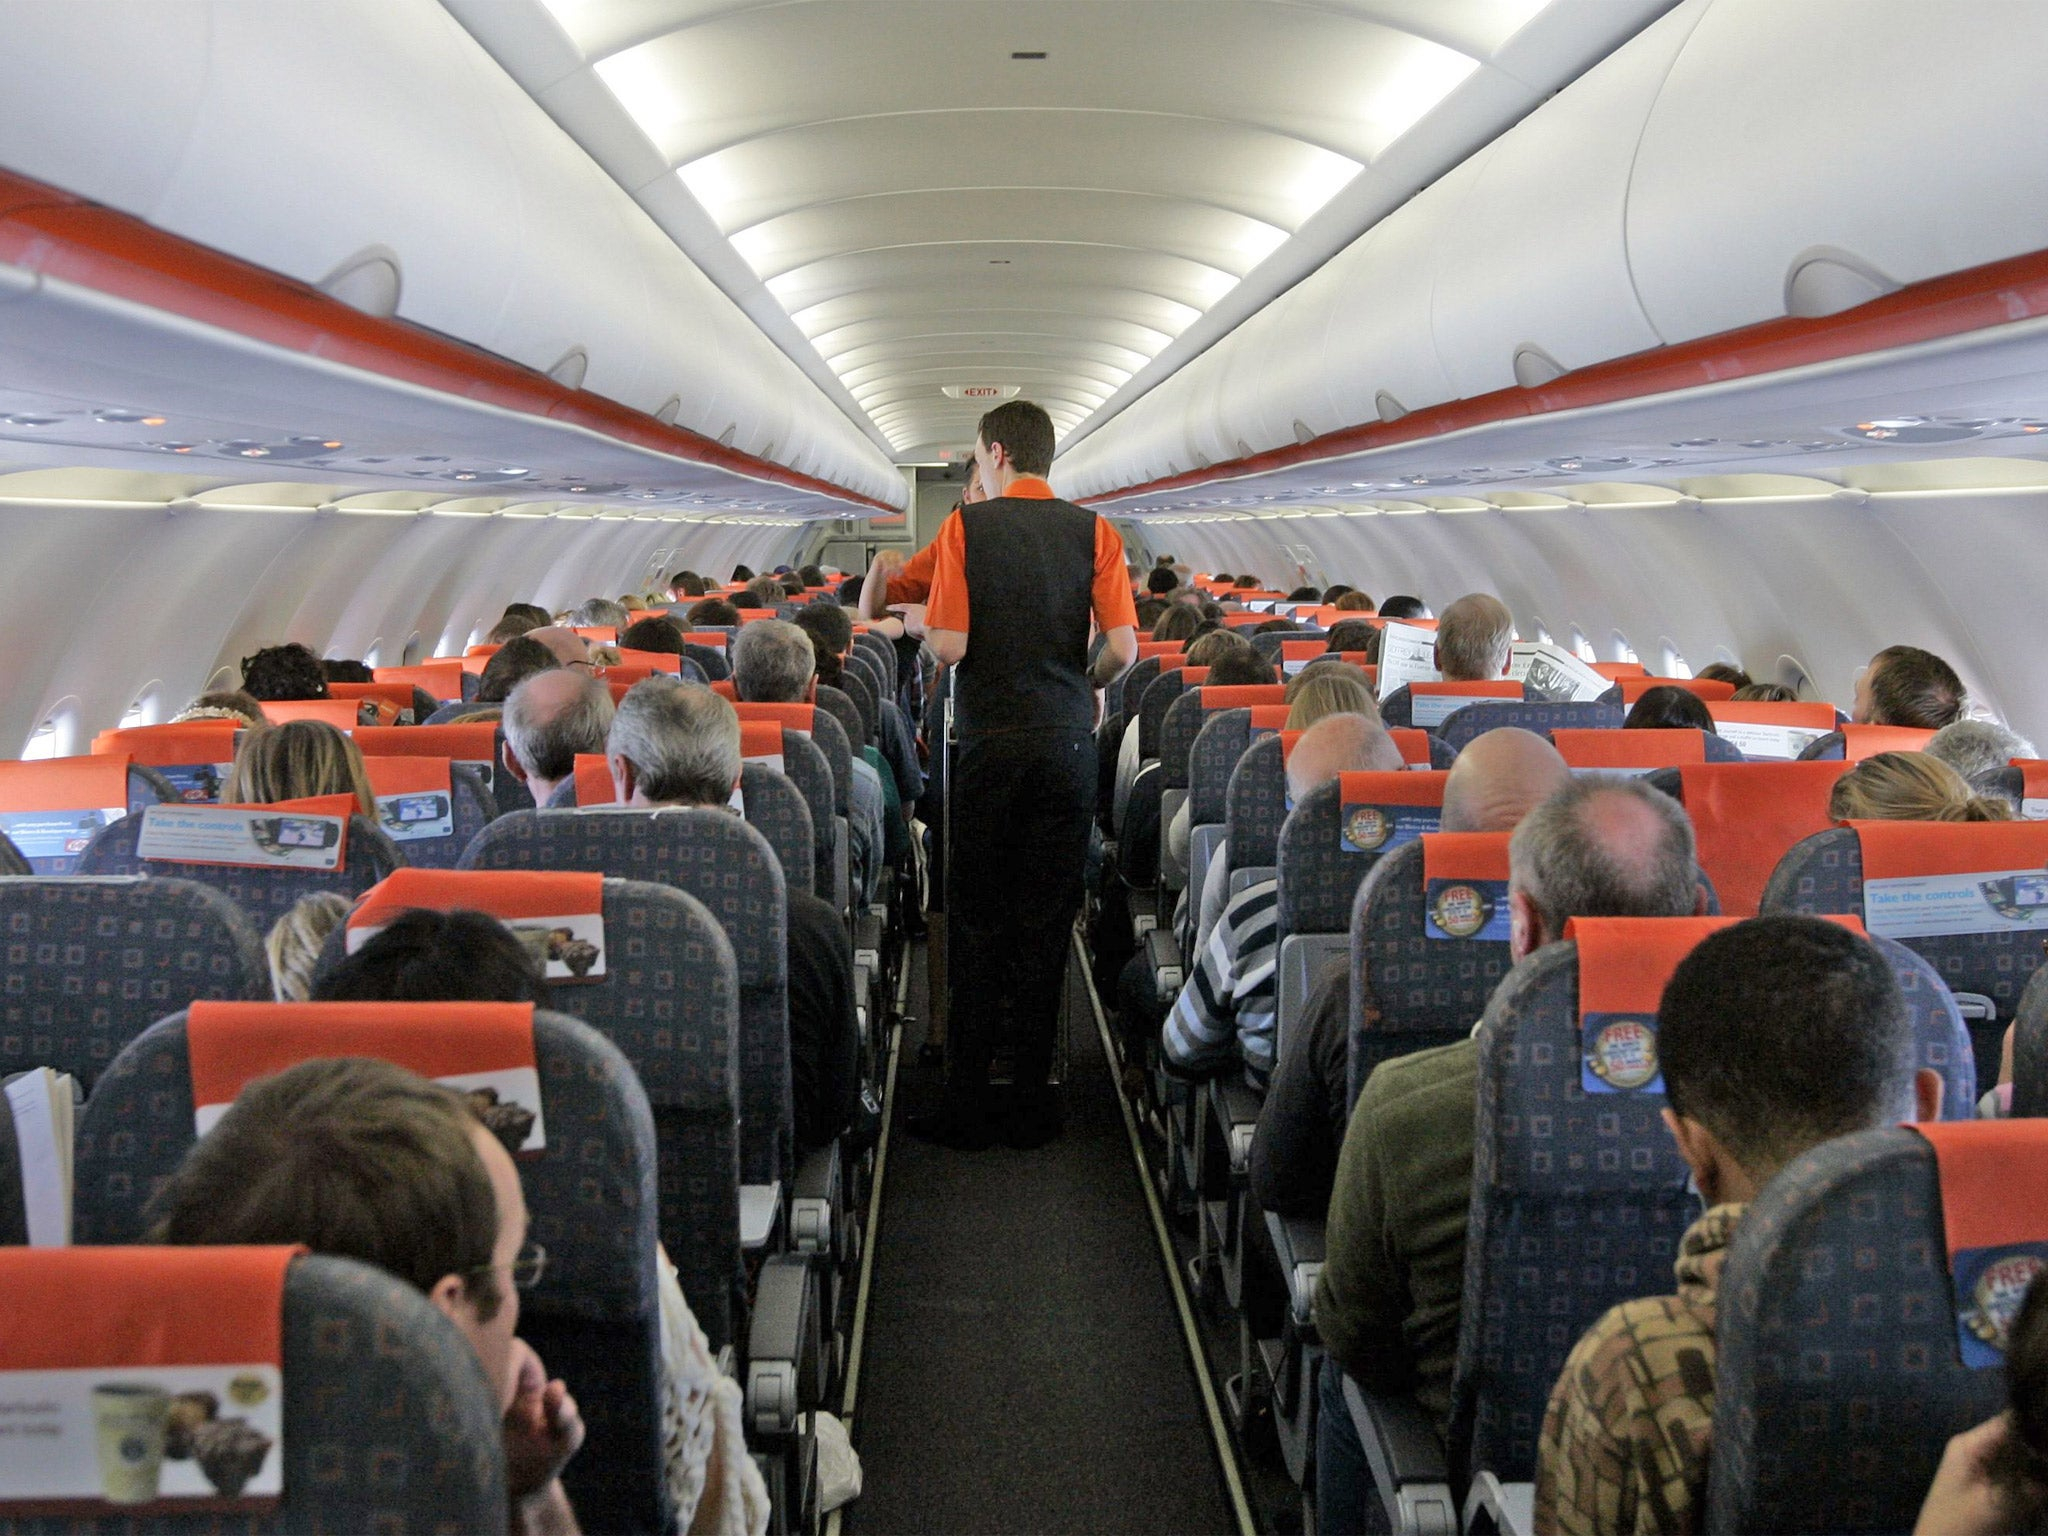 Easyjet Asks Passengers To Slim Down Carry On Bags The